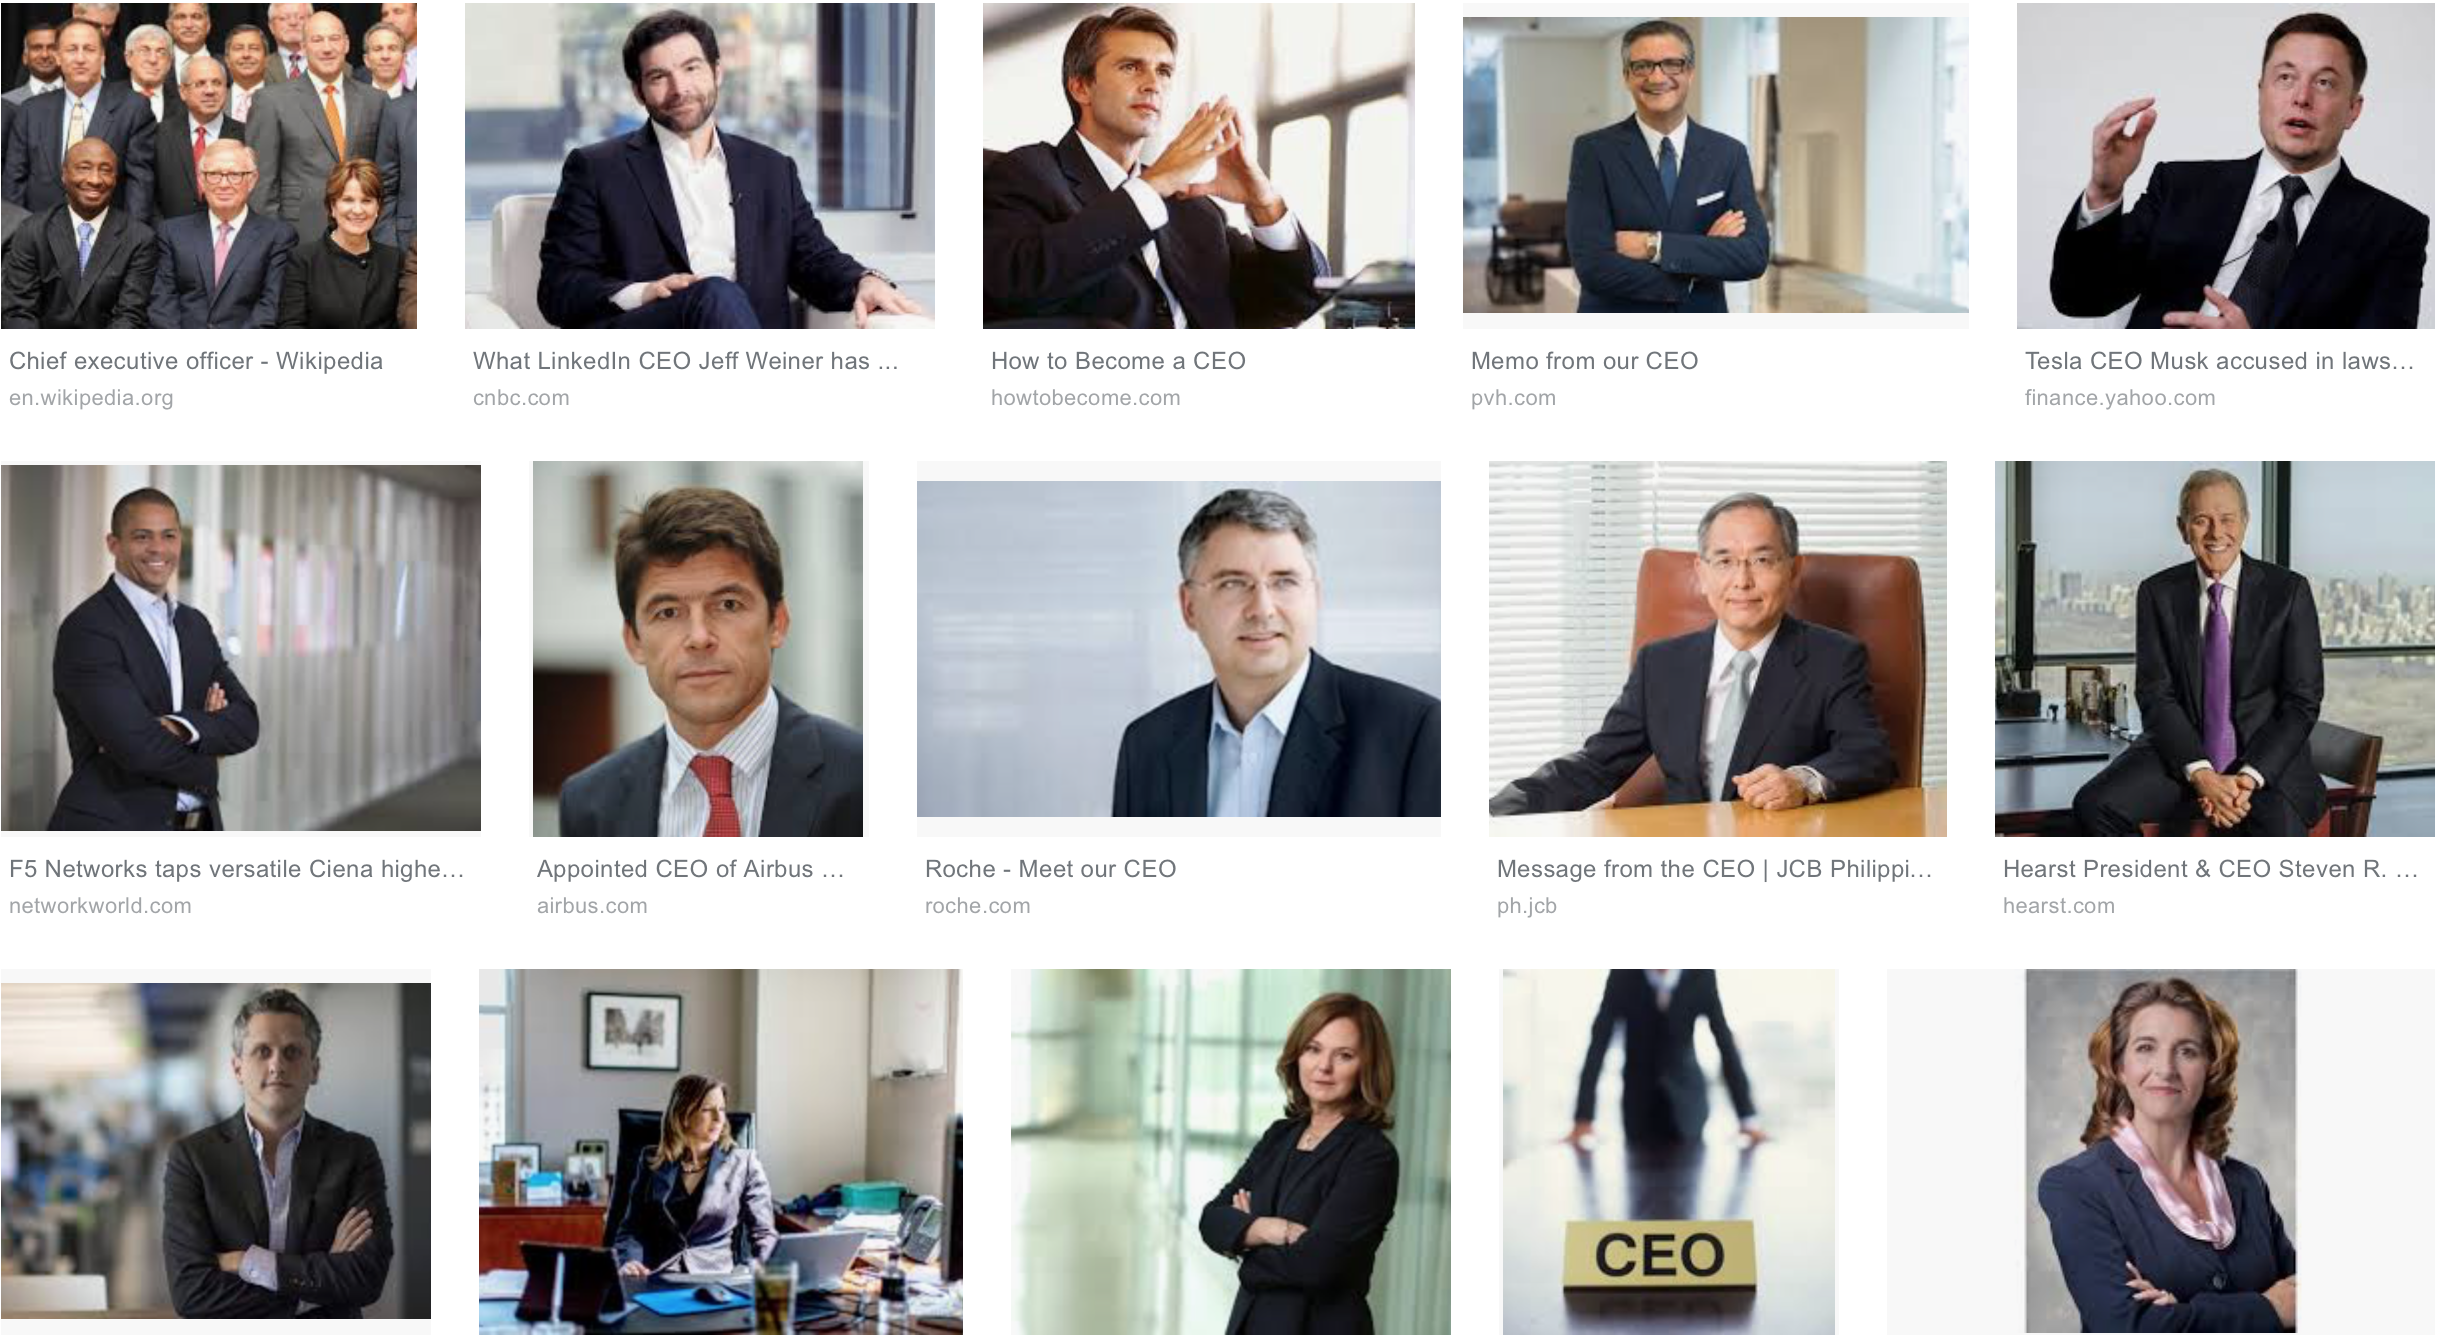 """the top results of a Google image search for """"CEO"""""""